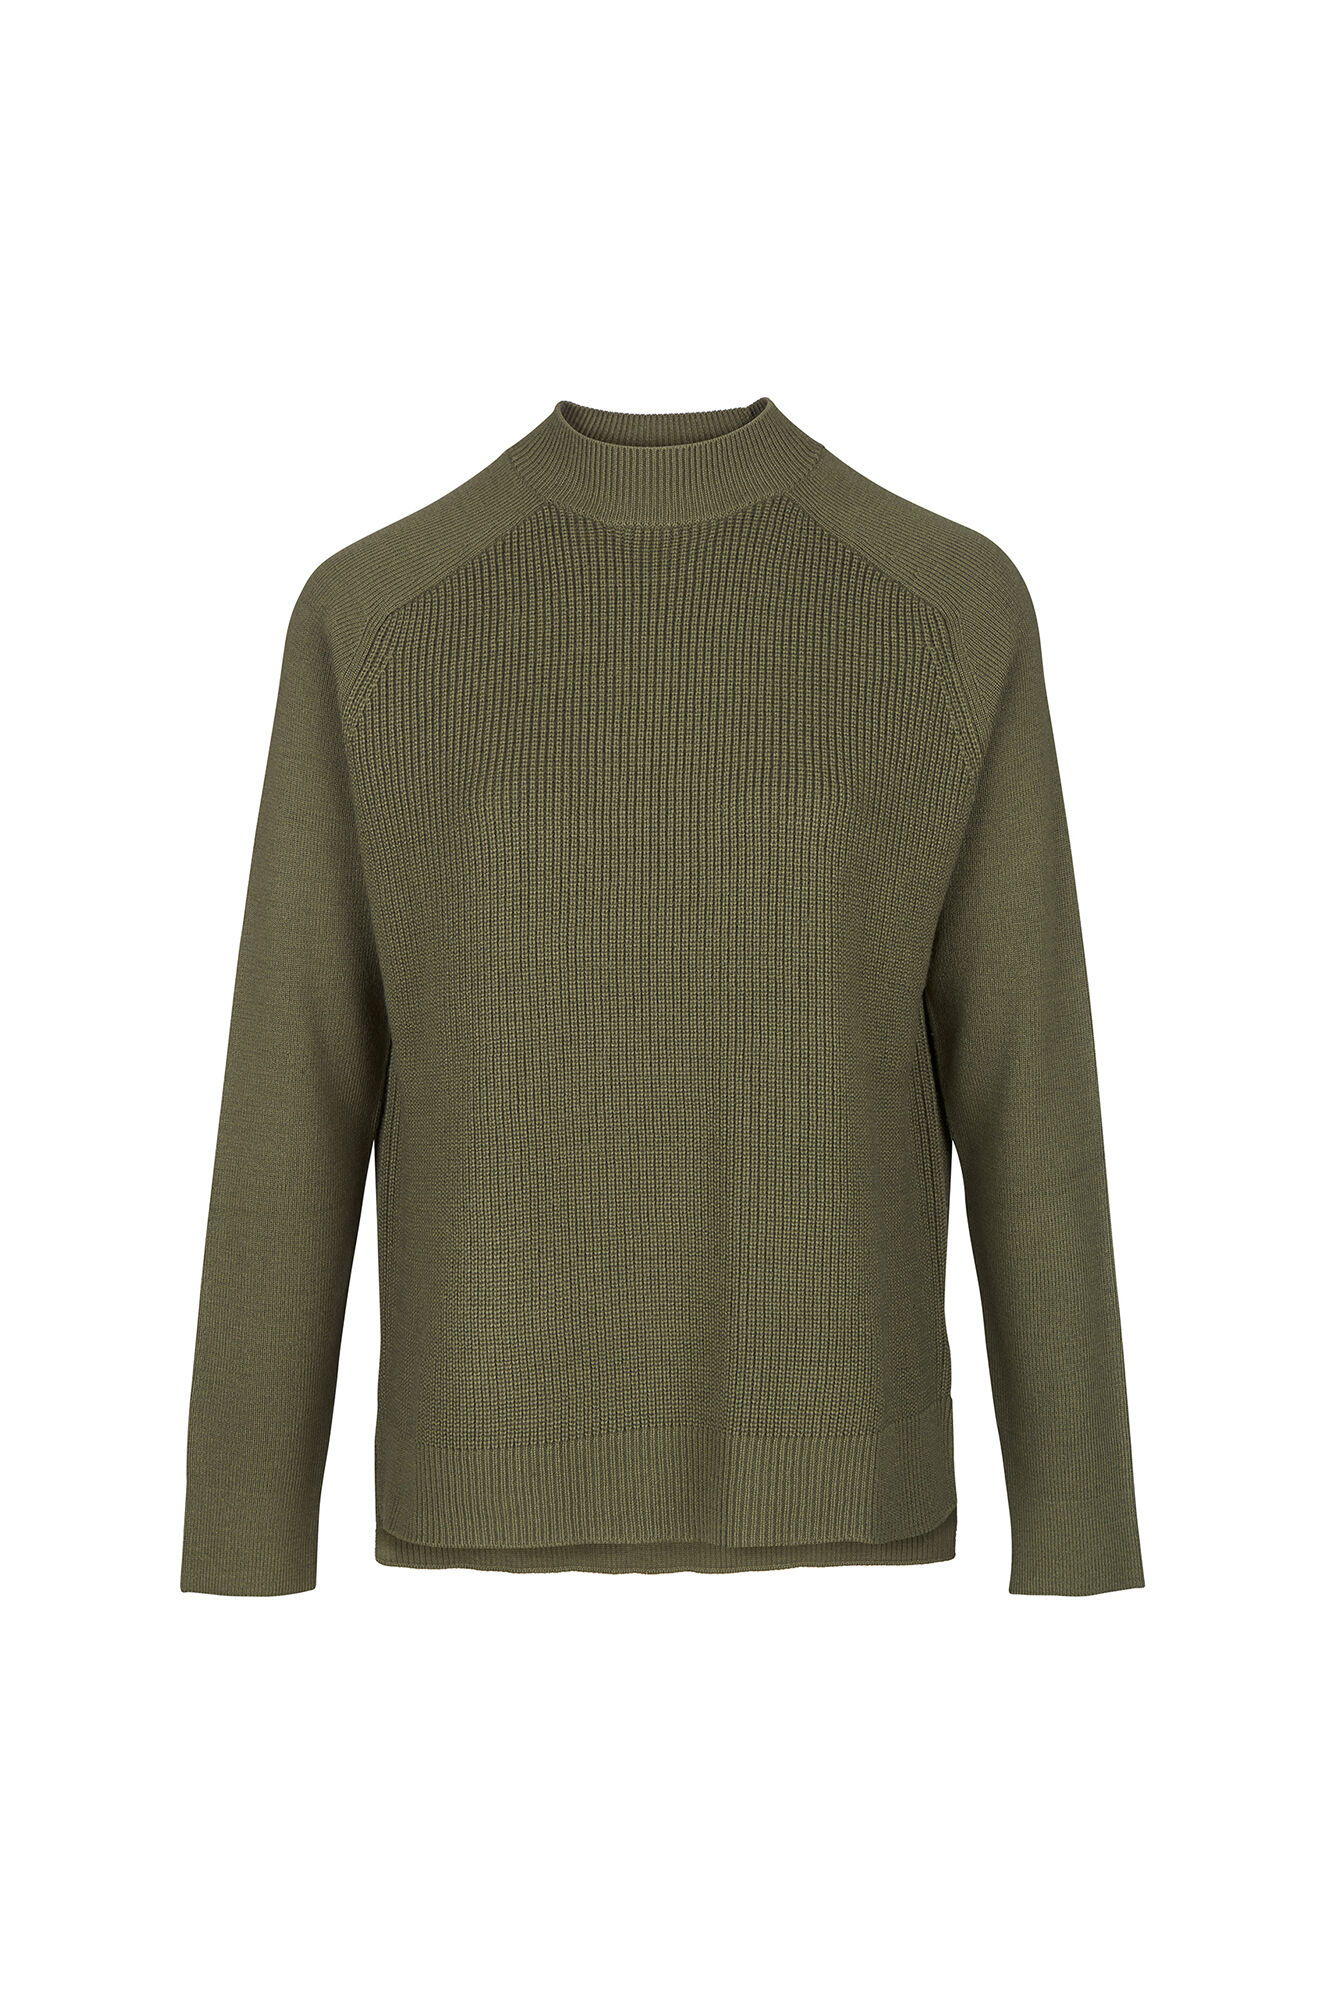 ENNICOLINE KNIT 5531, DUSTY OLIVE